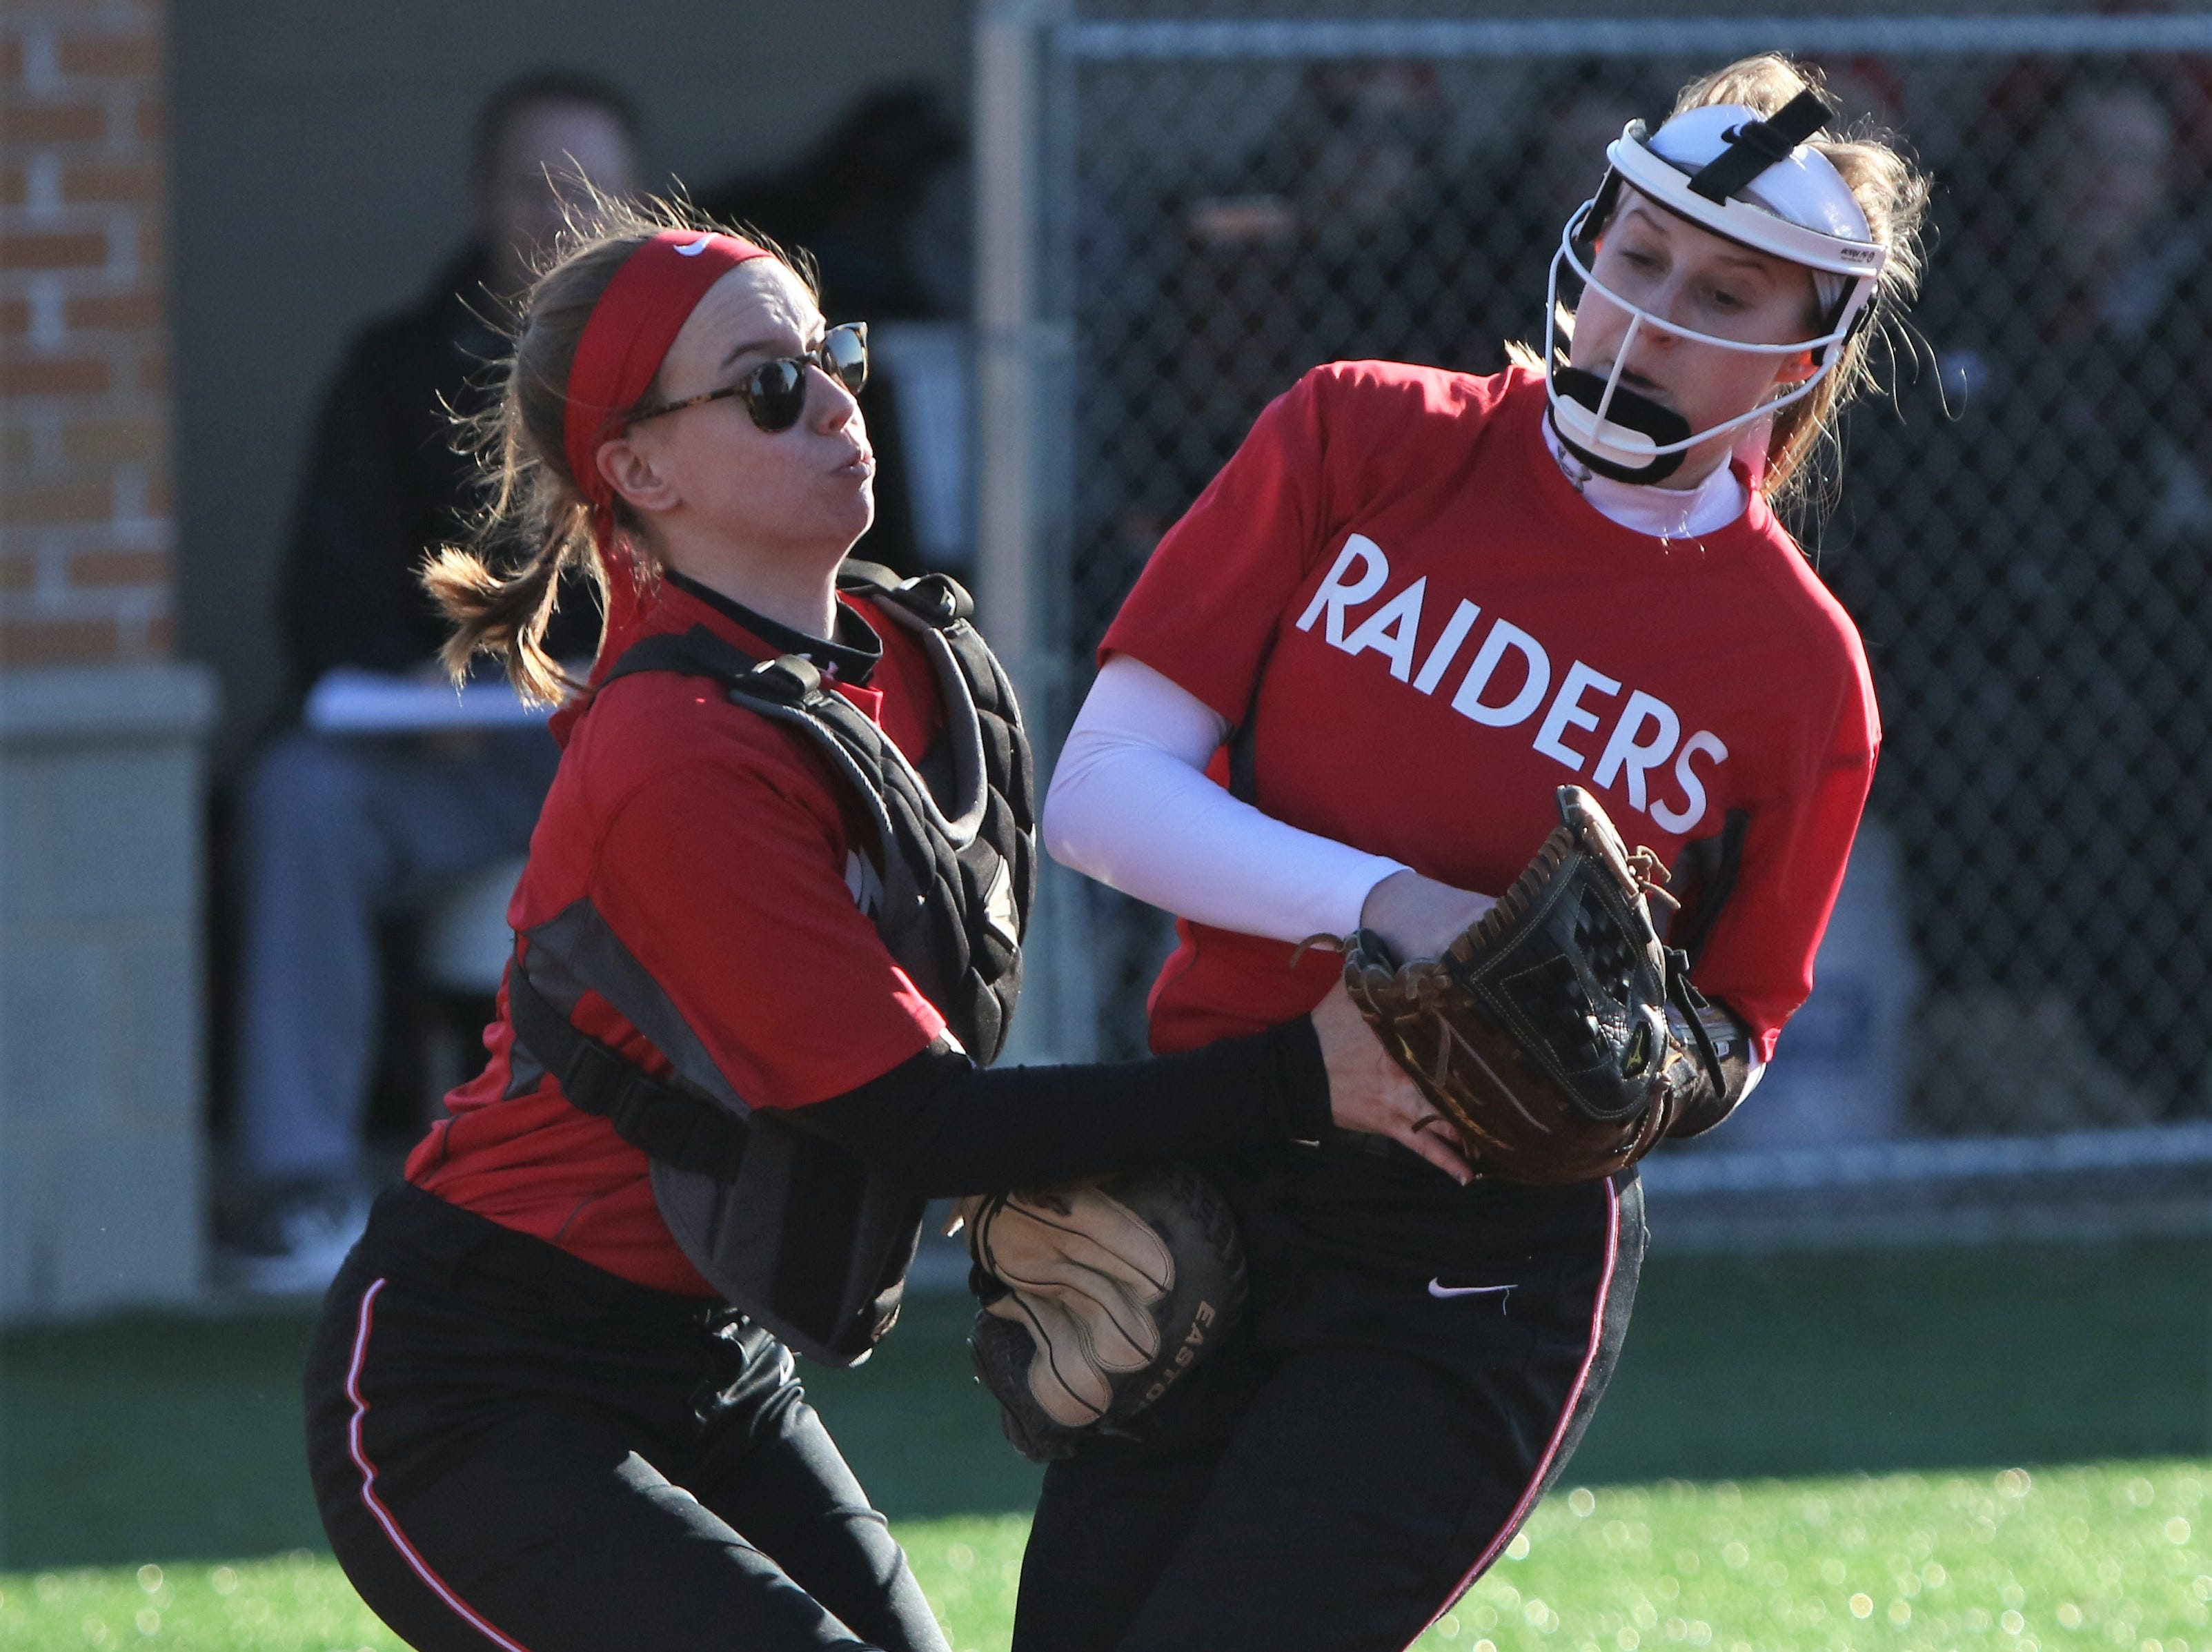 Wauwatosa East pitcher Stasia Raebel (right) nearly collides with catcher Kenzie Miller as she makes a catch against Catholic Memorial on March 19, 2019.